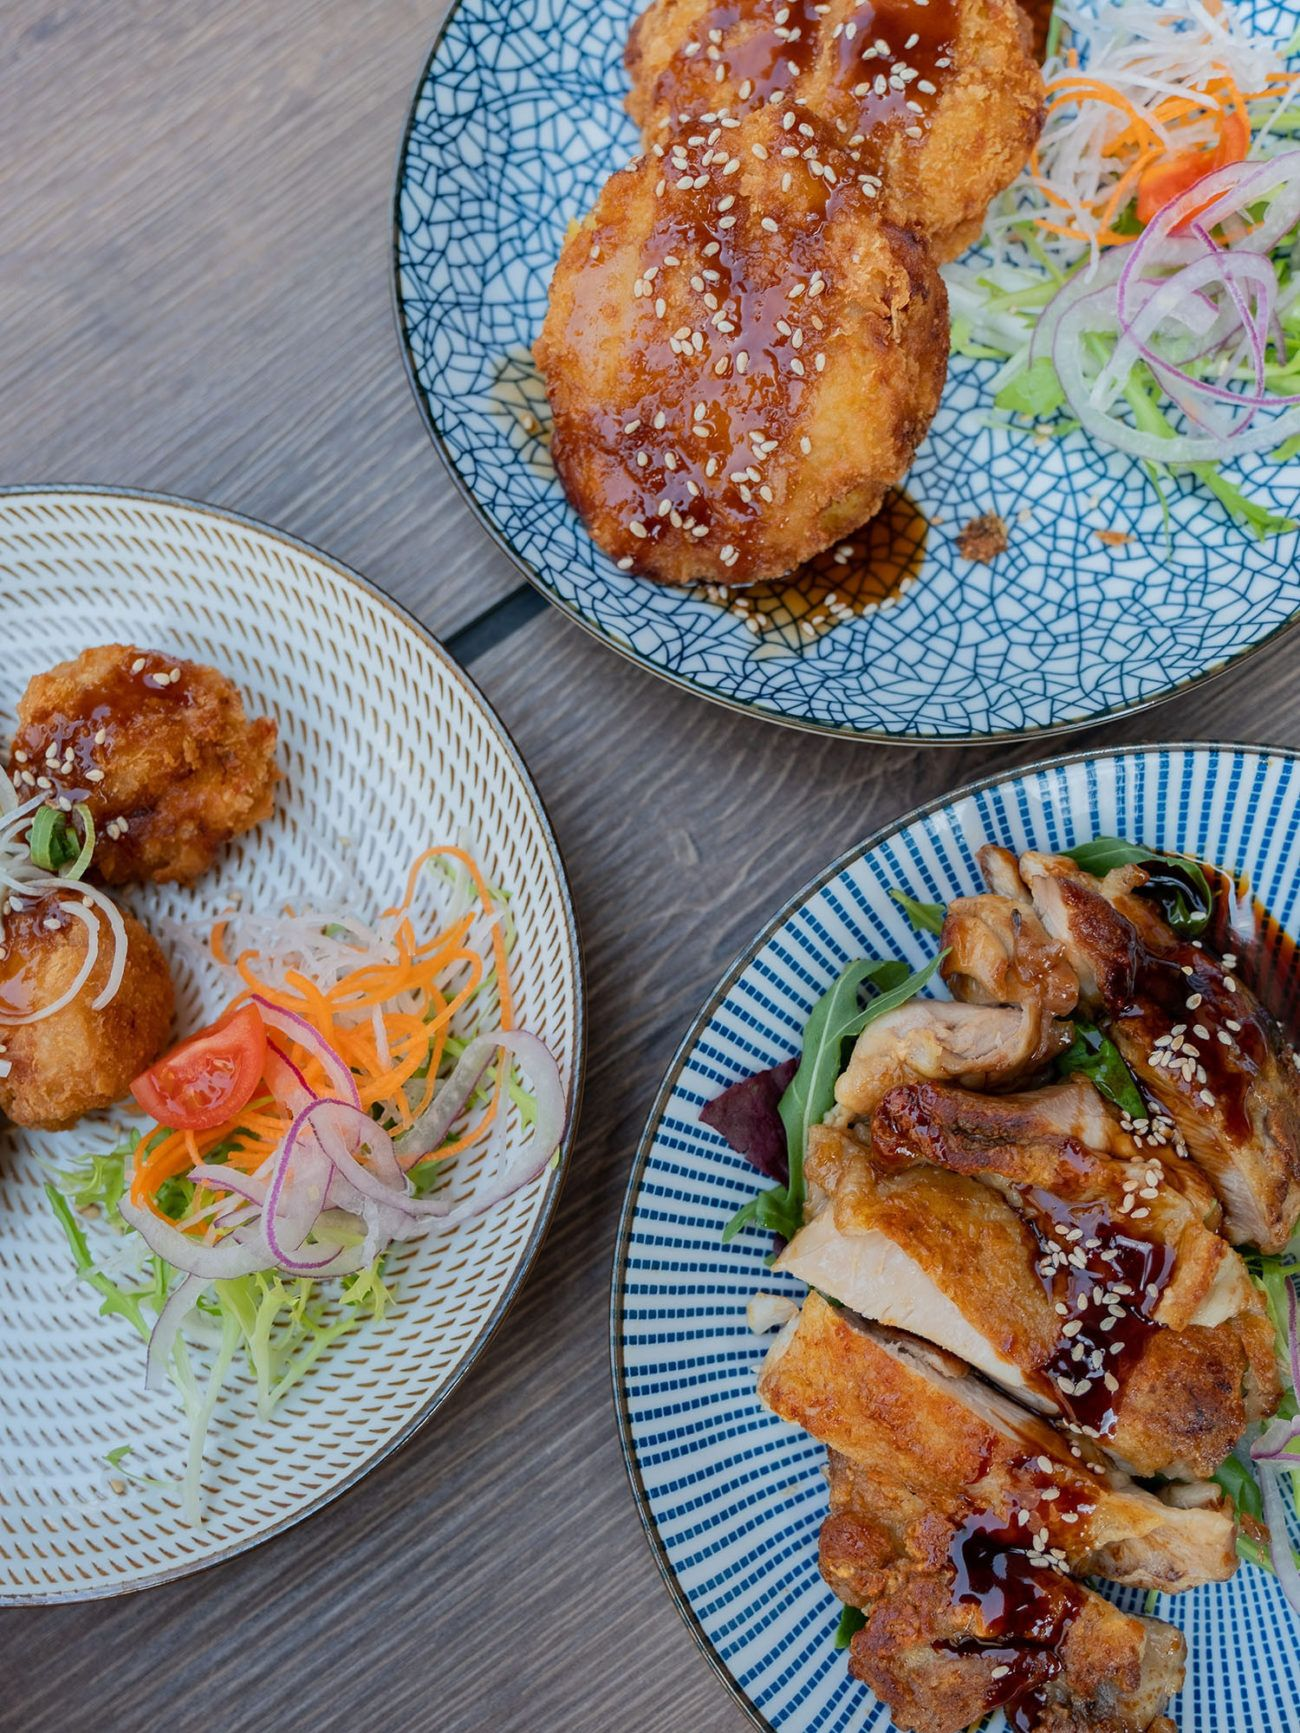 Foodblog About Fuel, Restaurant CHOTTO Berlin, Chicken Teriyaki, Kroketten